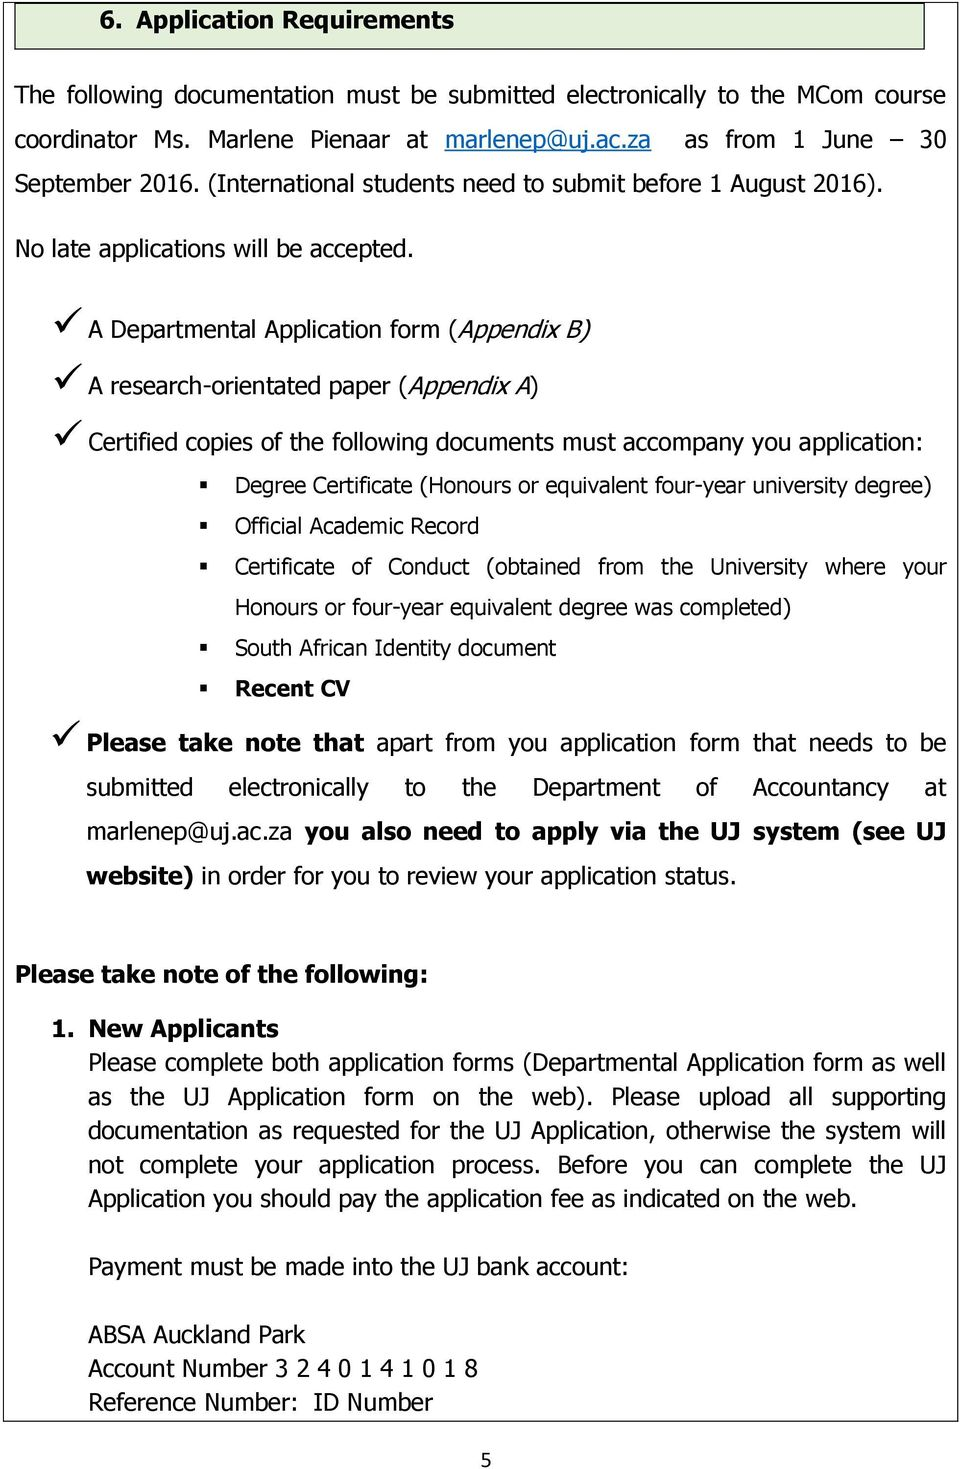 A Departmental Application form (Appendix B) A research-orientated paper (Appendix A) Certified copies of the following documents must accompany you application: Degree Certificate (Honours or